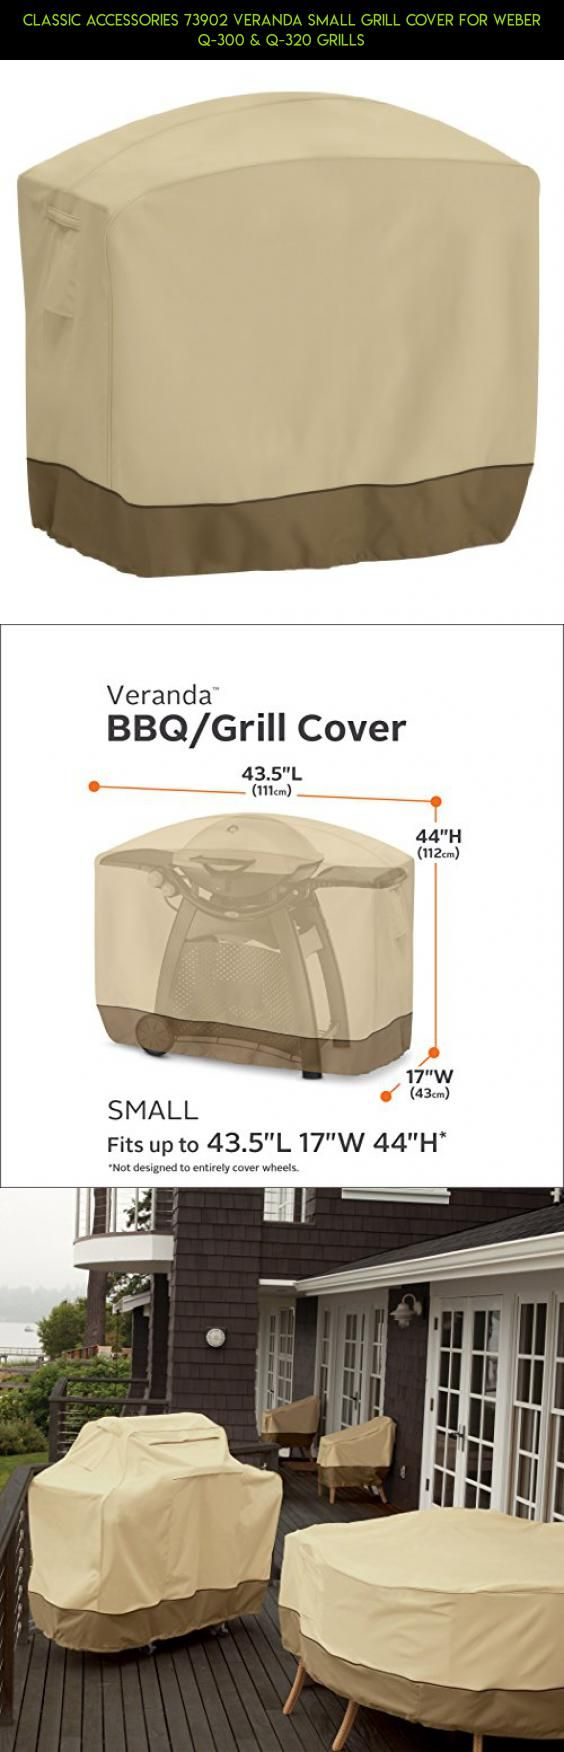 Classic Accessories 73902 Veranda Small Grill Cover For Weber Q-300 & Q-320 Grills #grills #parts #small #racing #fpv #shopping #products #tech #drone #gadgets #kit #technology #camera #plans